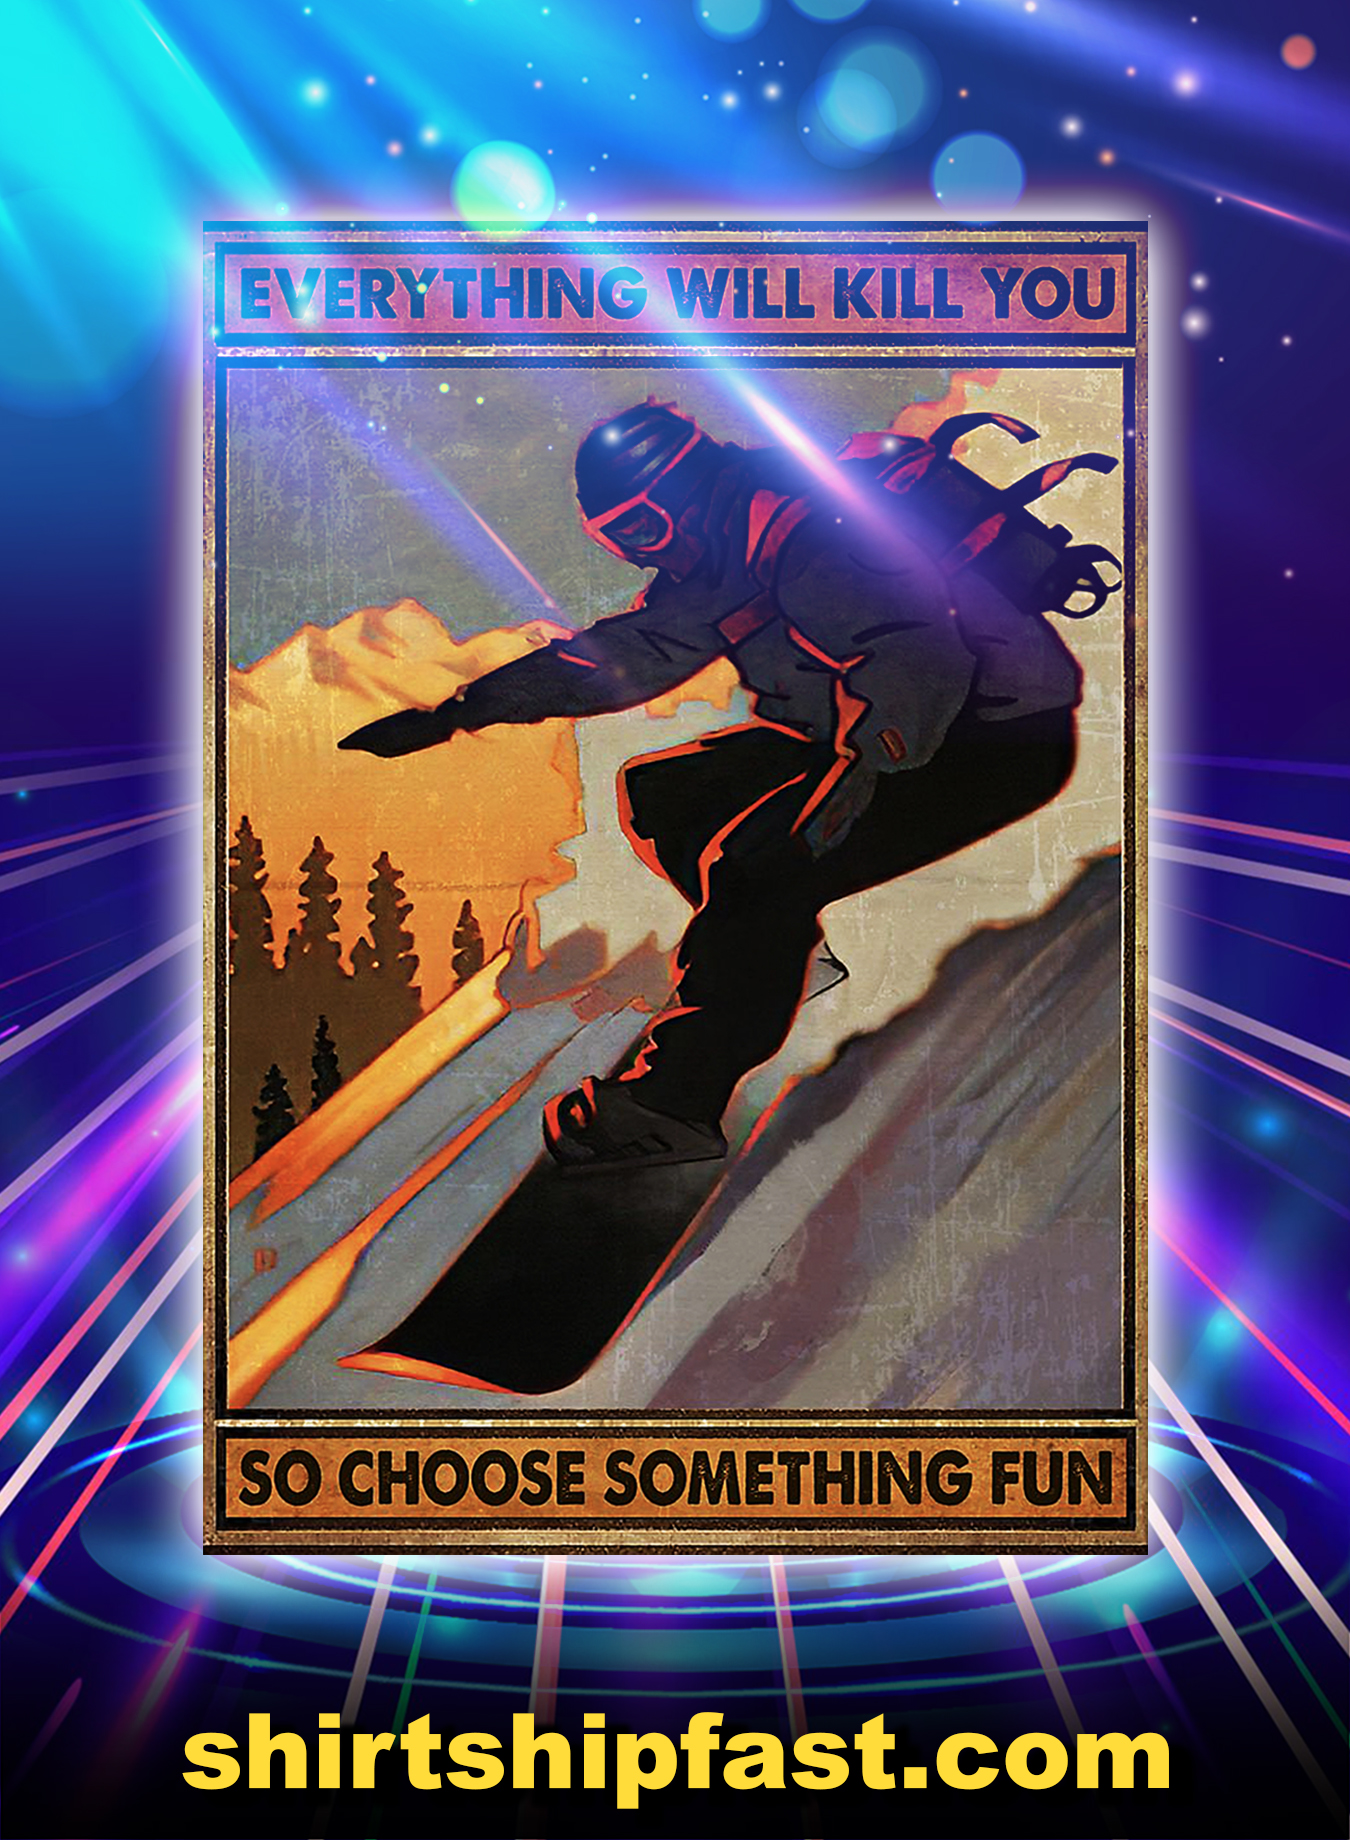 Snowboarding everything will kill you so choose something fun poster - A3